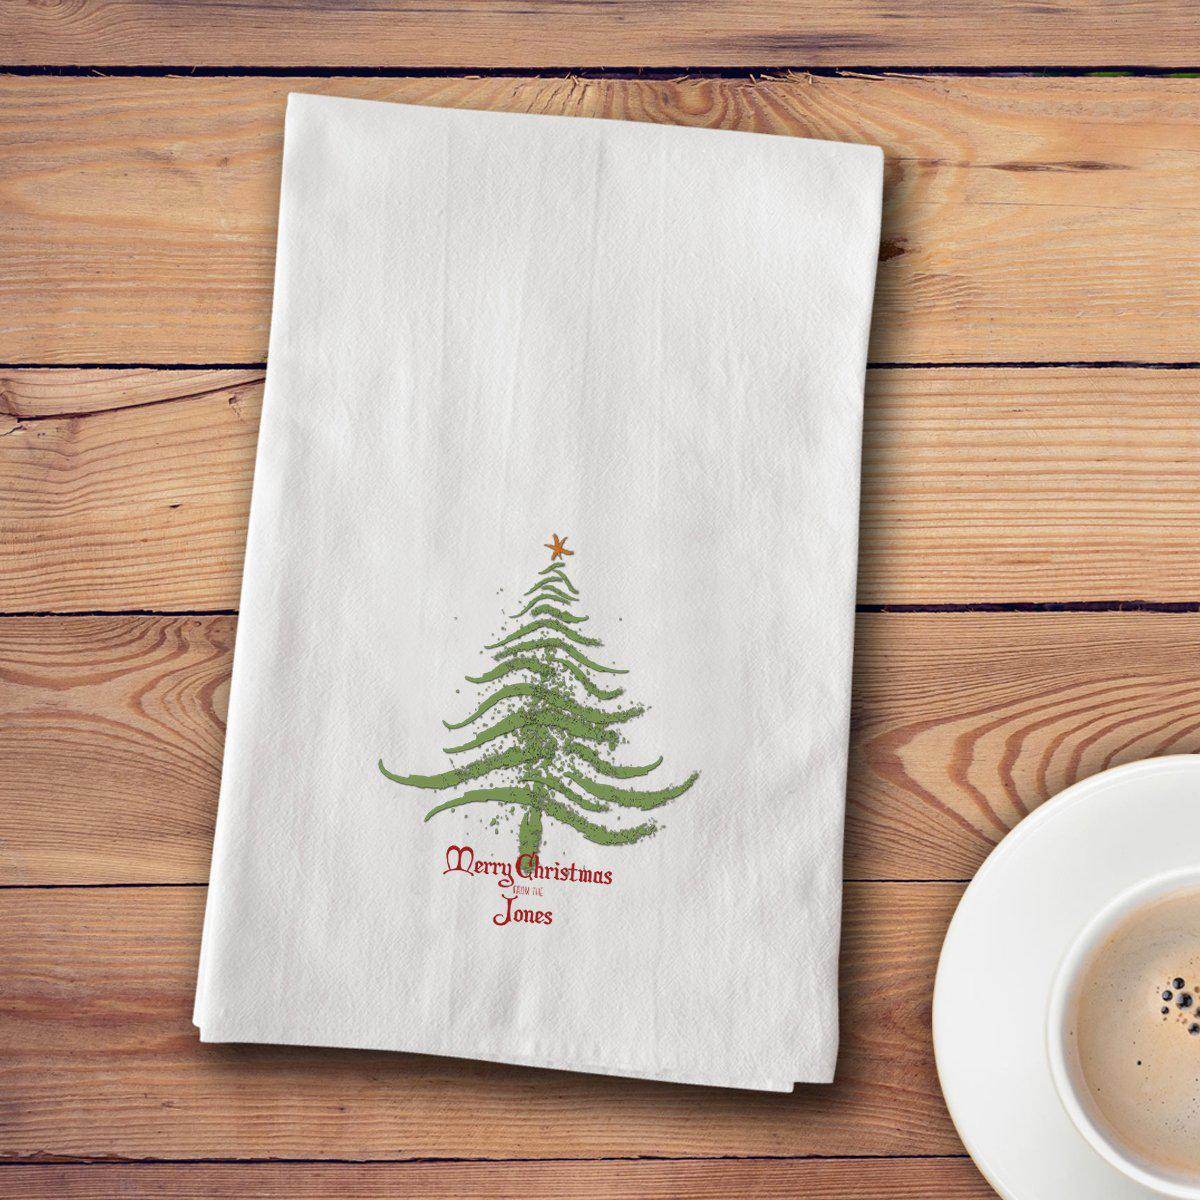 Personalized Christmas Tea Towels - 12 designs